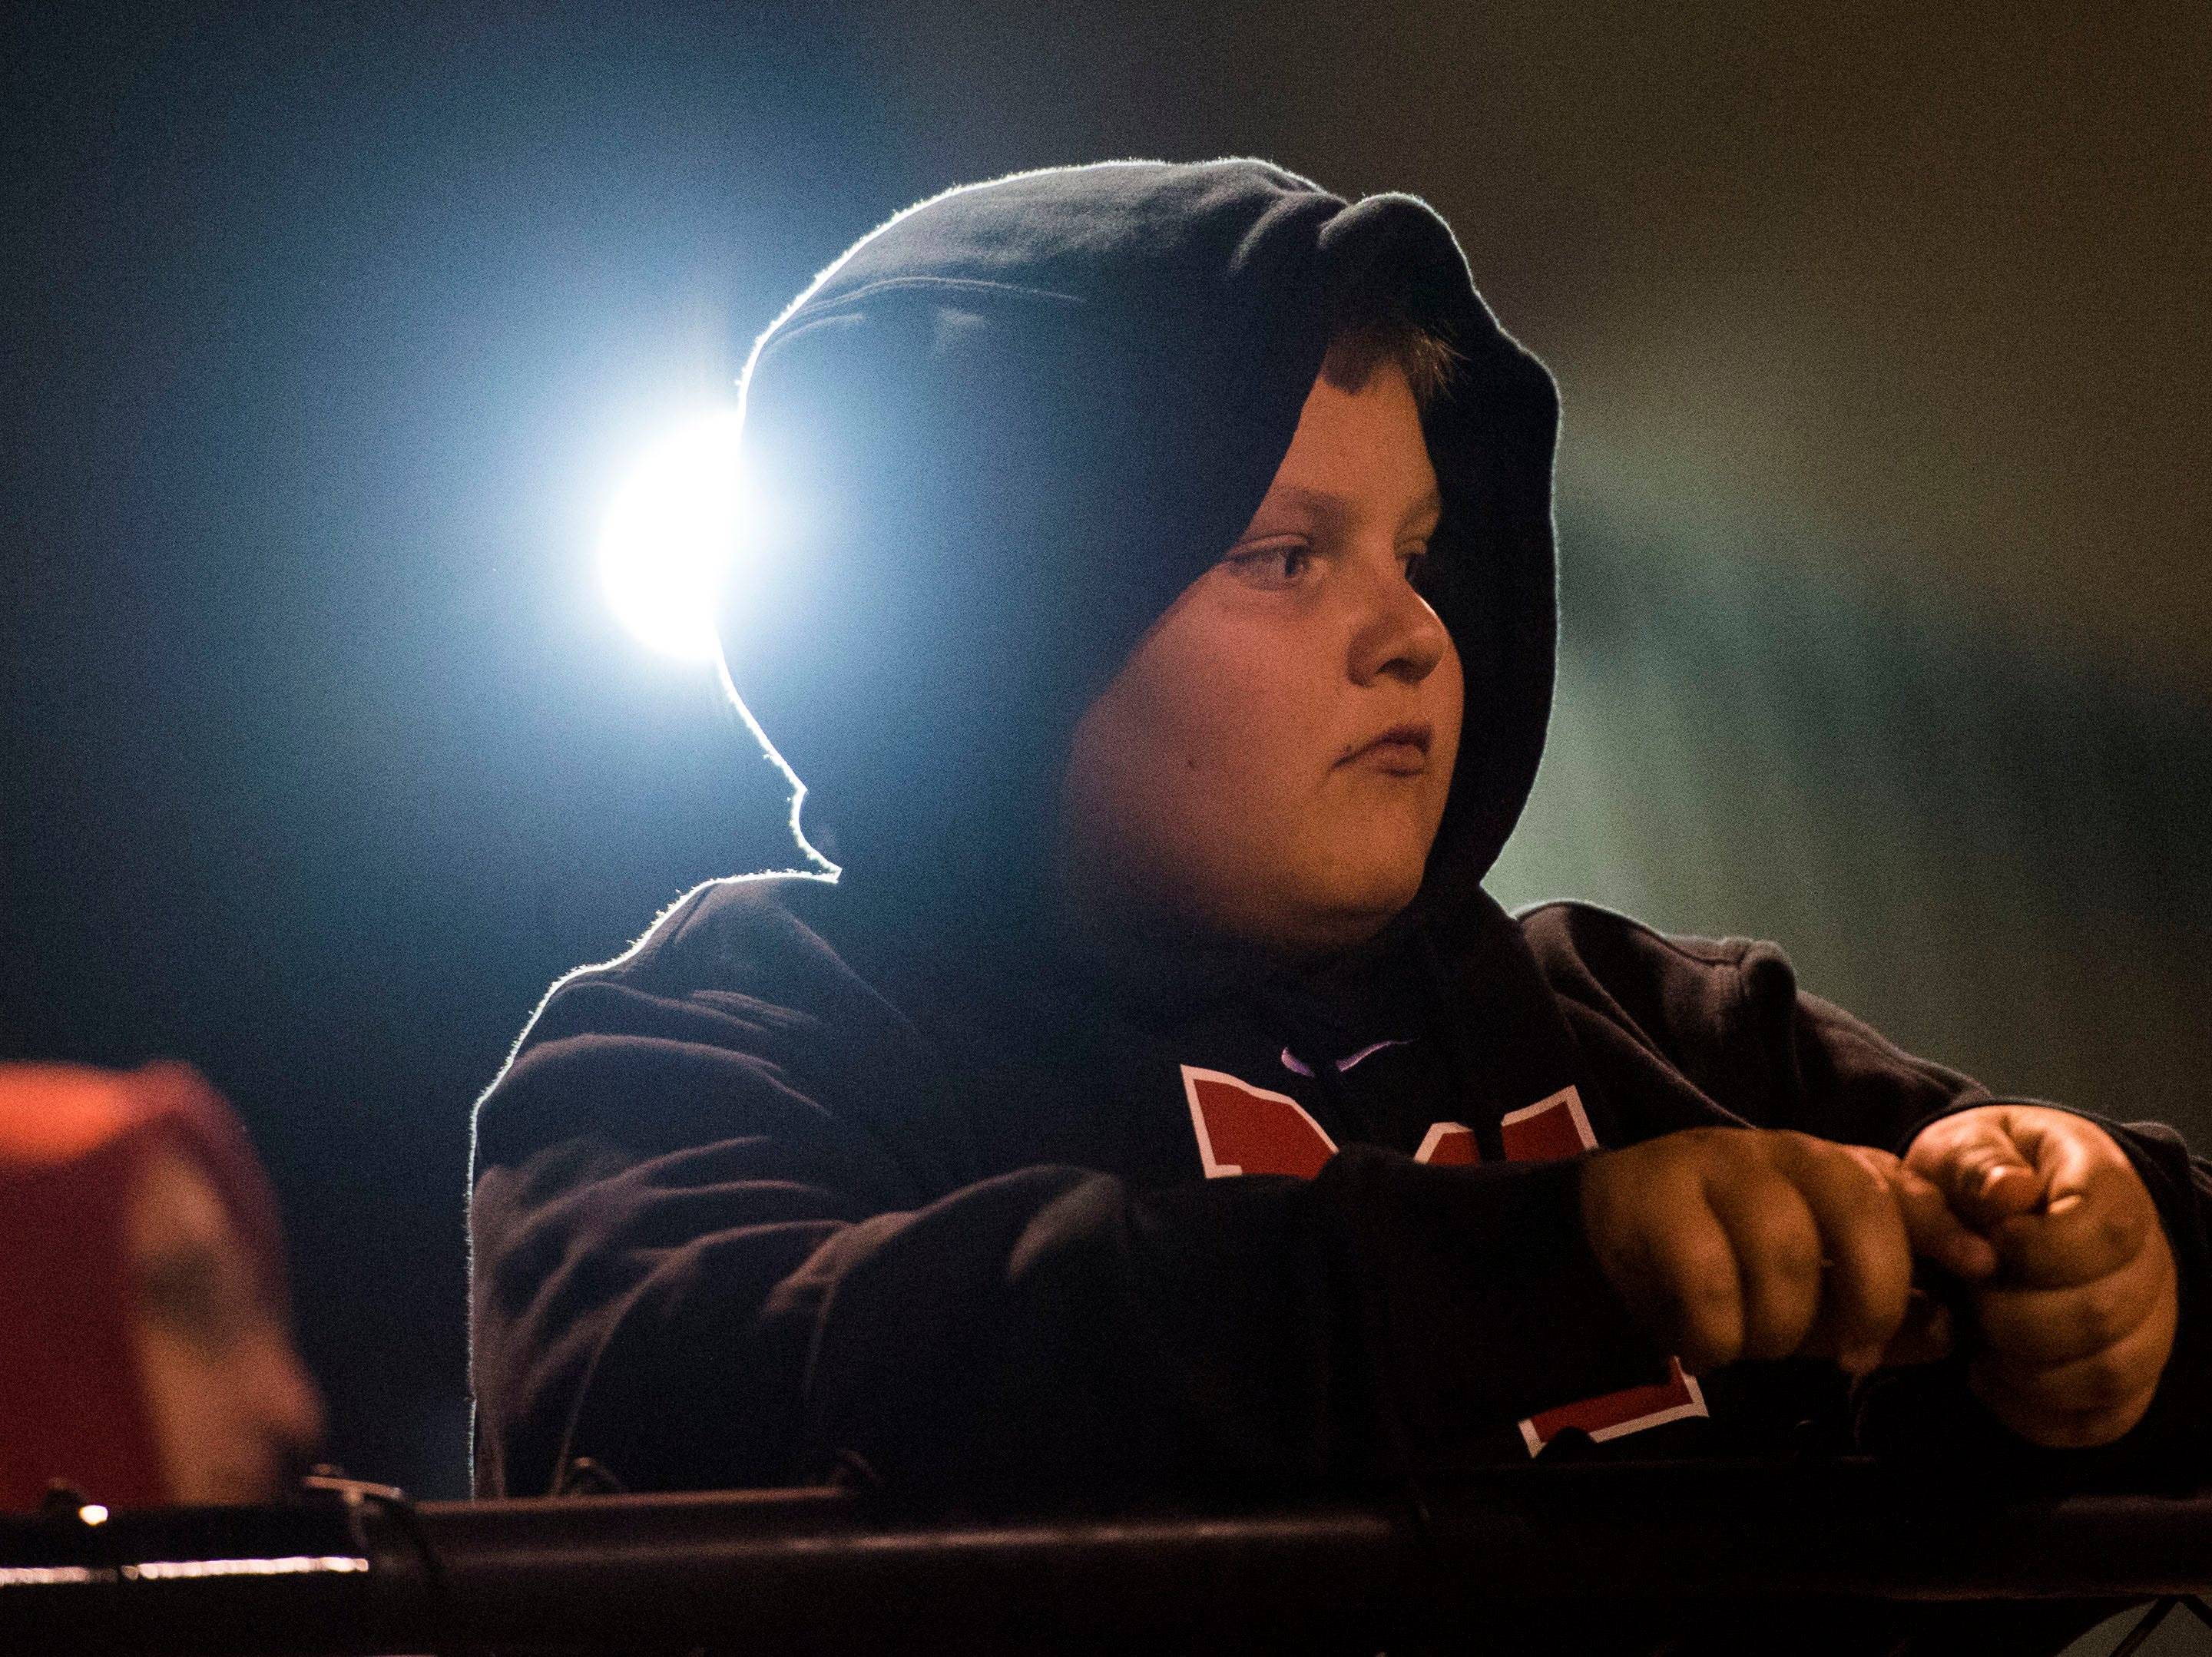 A Maryville fan watches during a 6A quarterfinal game between Maryville and Farragut at Maryville Friday, Nov. 16, 2018. Maryville defeated Farragut 26-10.